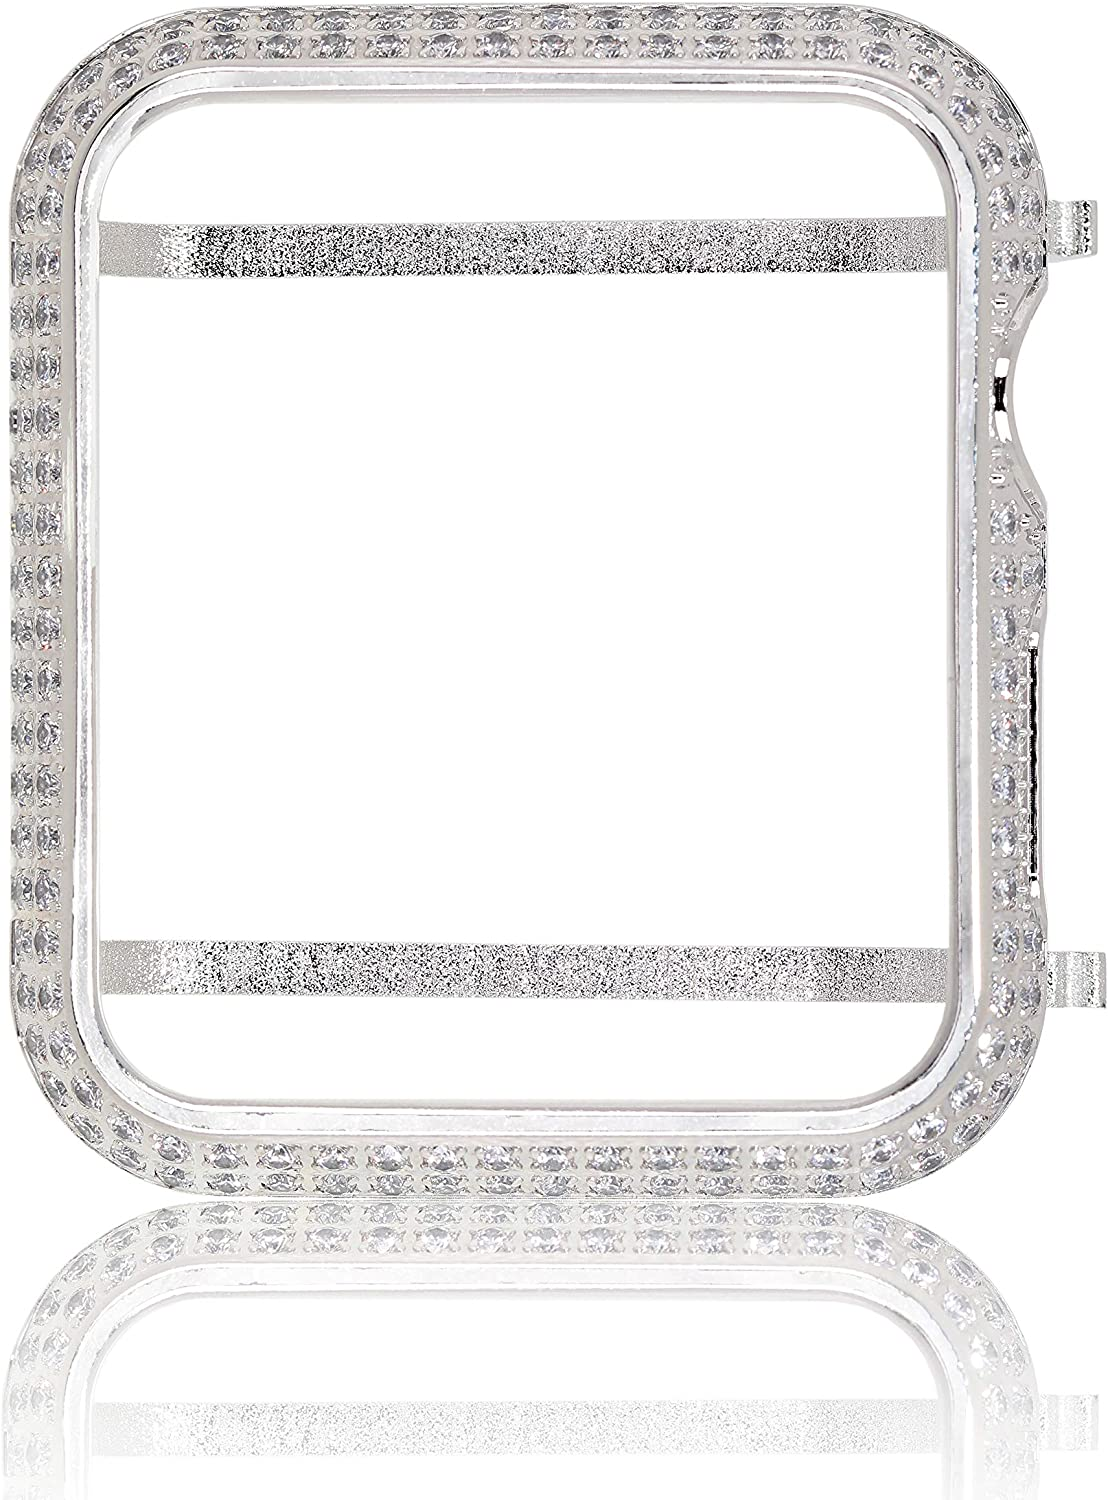 Hiseanllo Rhinestone Inlaid Watch Cover Protective Case Compatible with iWatch Apple Watch Series 1, Series 2, Series 3 - Silver(42mm)